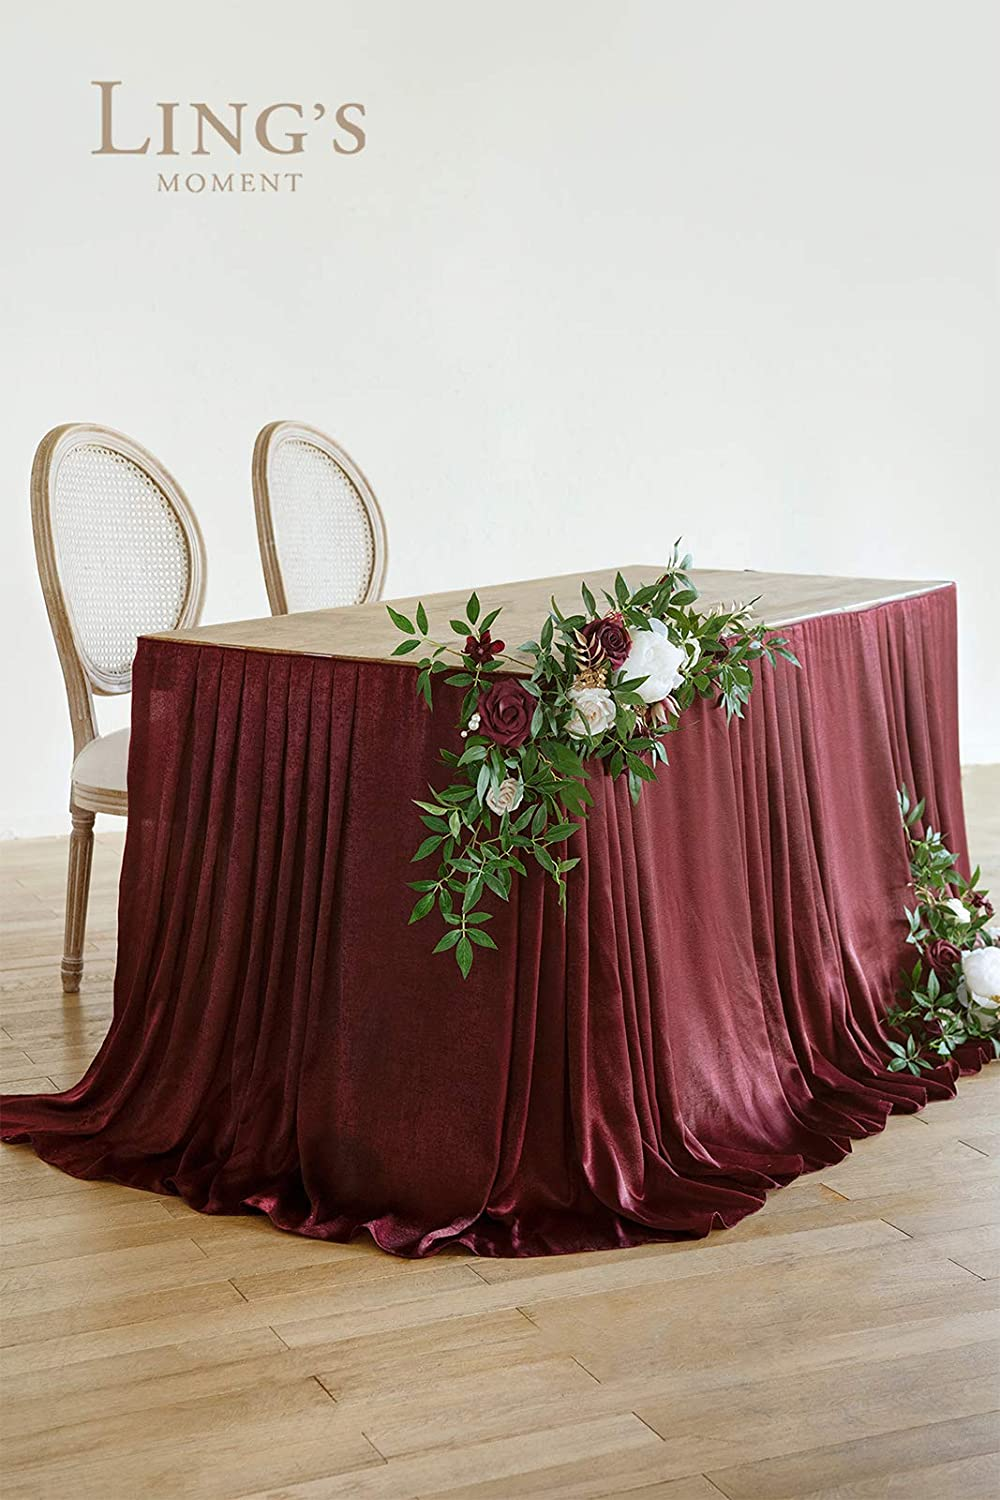 Set of 3 Lings moment Wedding Table Flowers Kit 2pcs Table Floral Arrangement /& 1pc 9FT Table Skirt for Wedding Sweetheart Table Reception Table Decoration